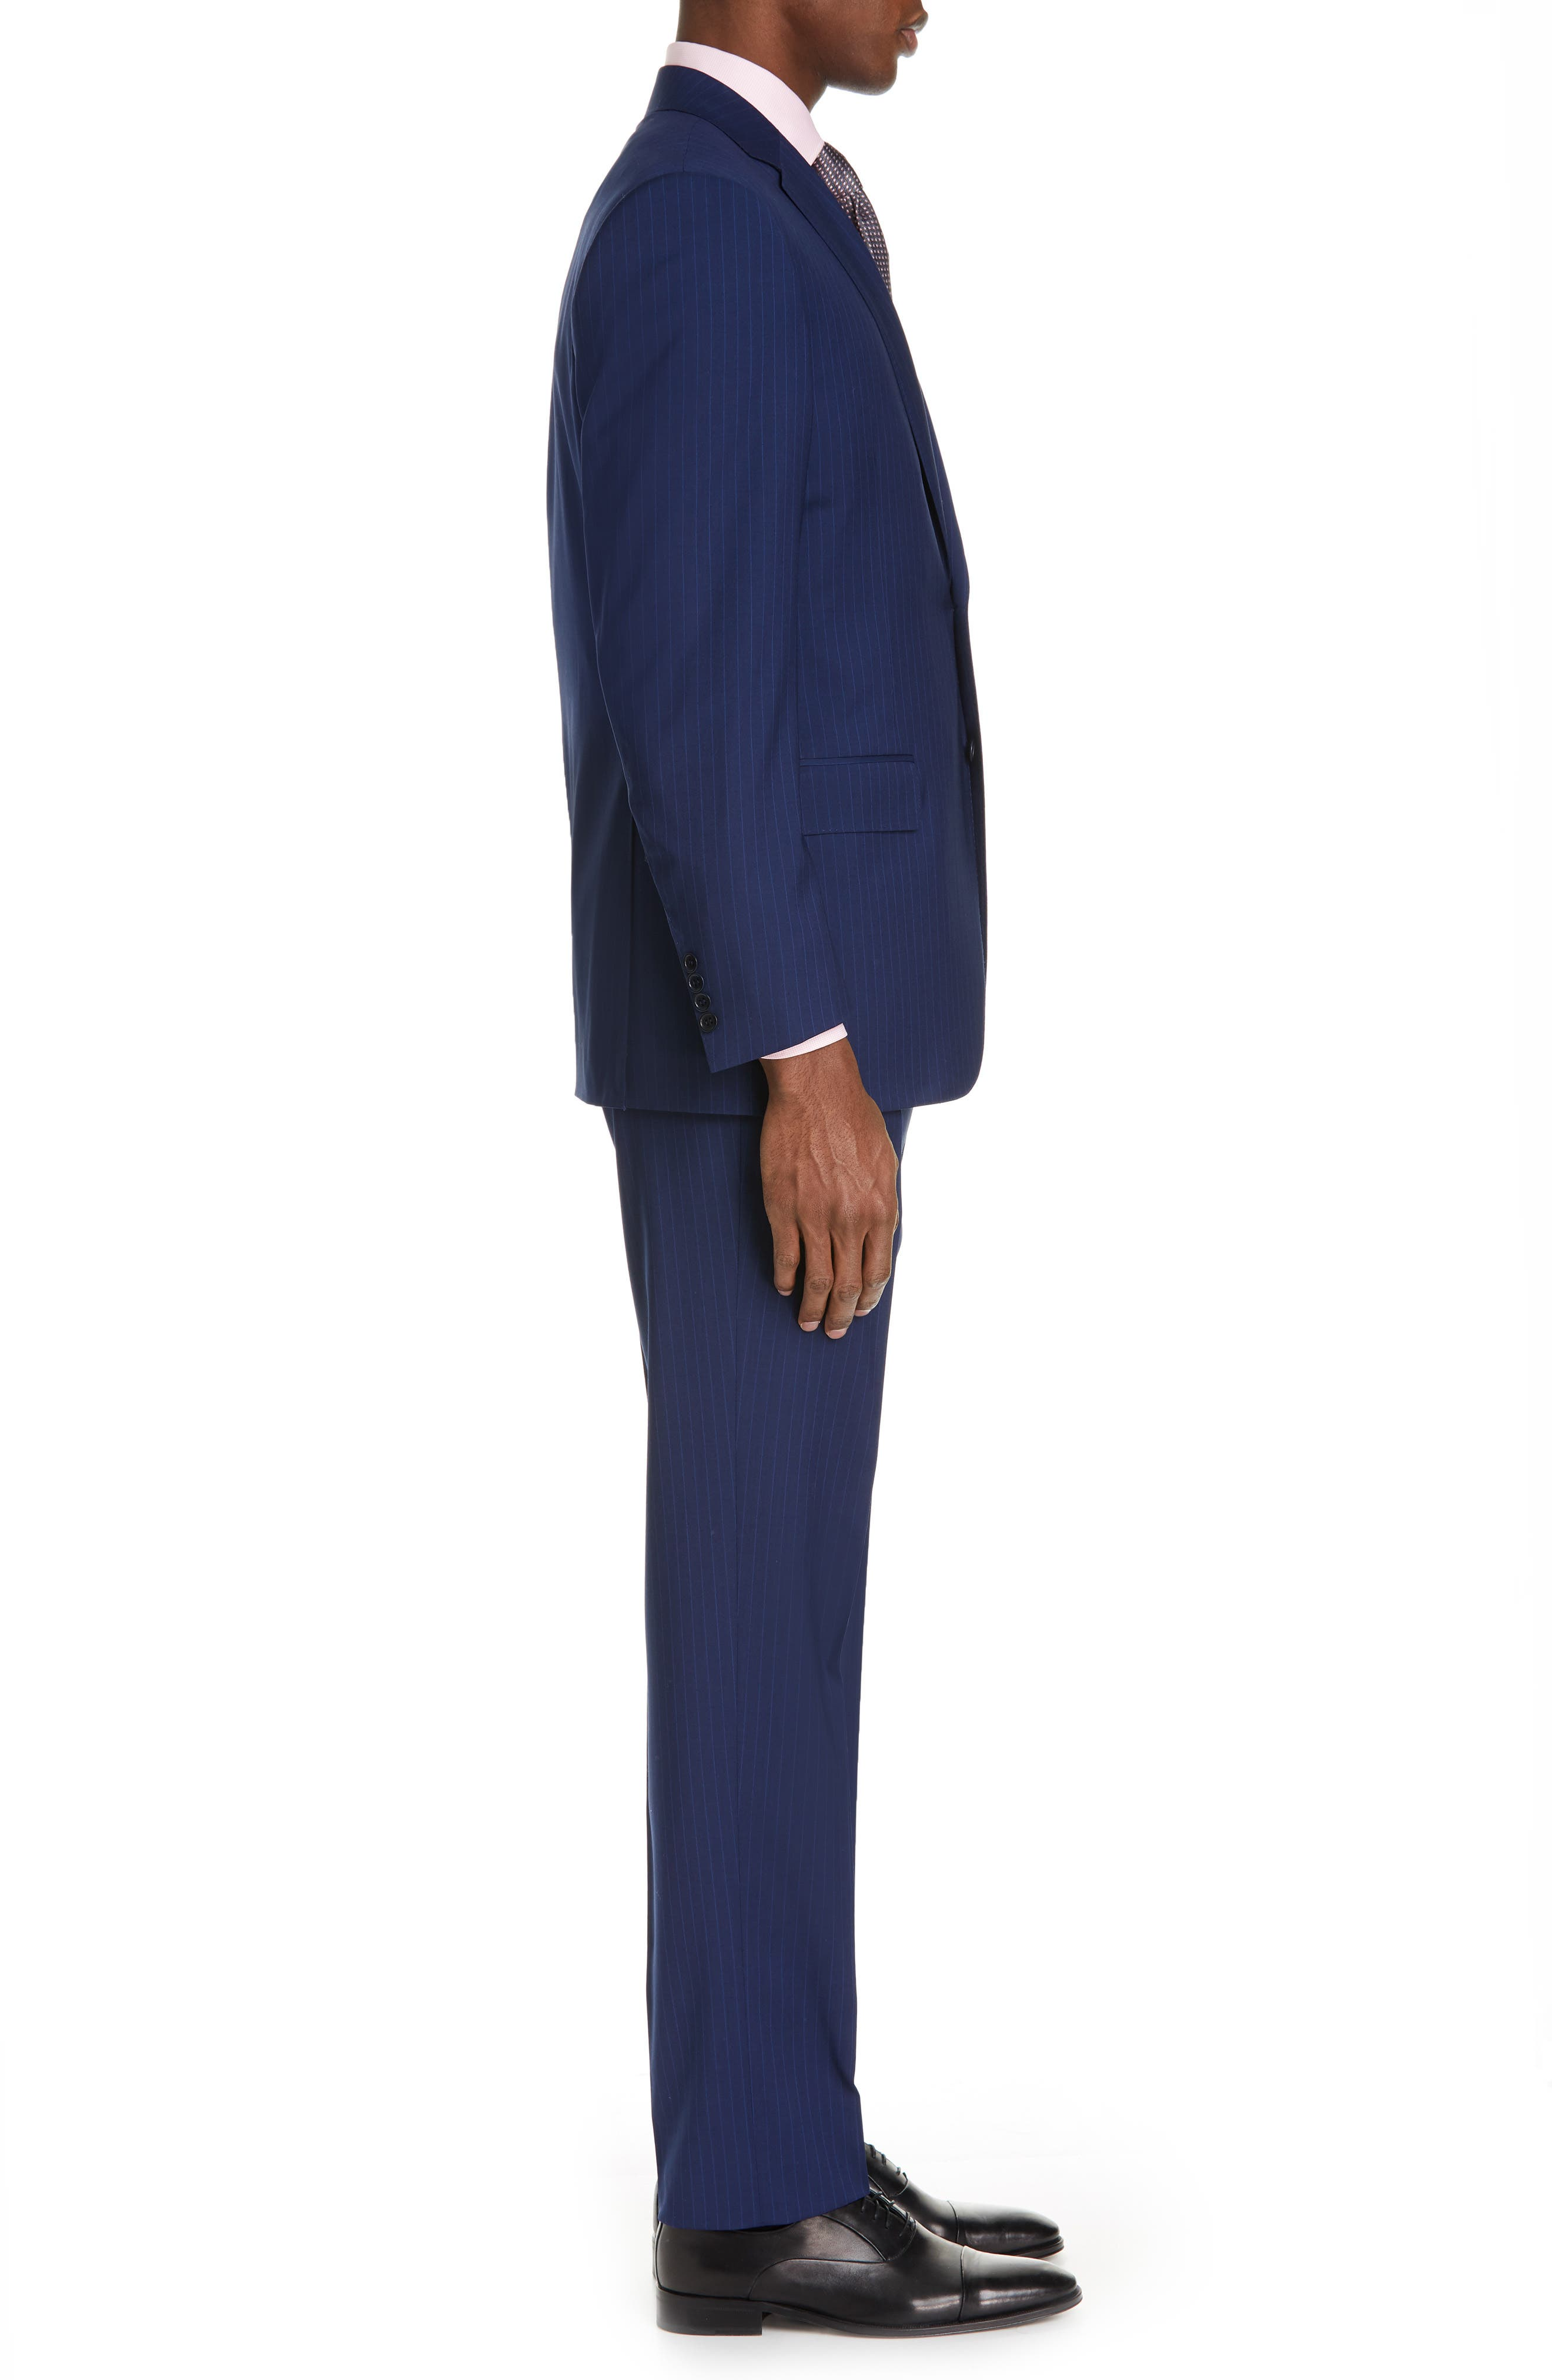 CANALI, Sienna Classic Fit Stripe Wool Suit, Alternate thumbnail 3, color, BLUE